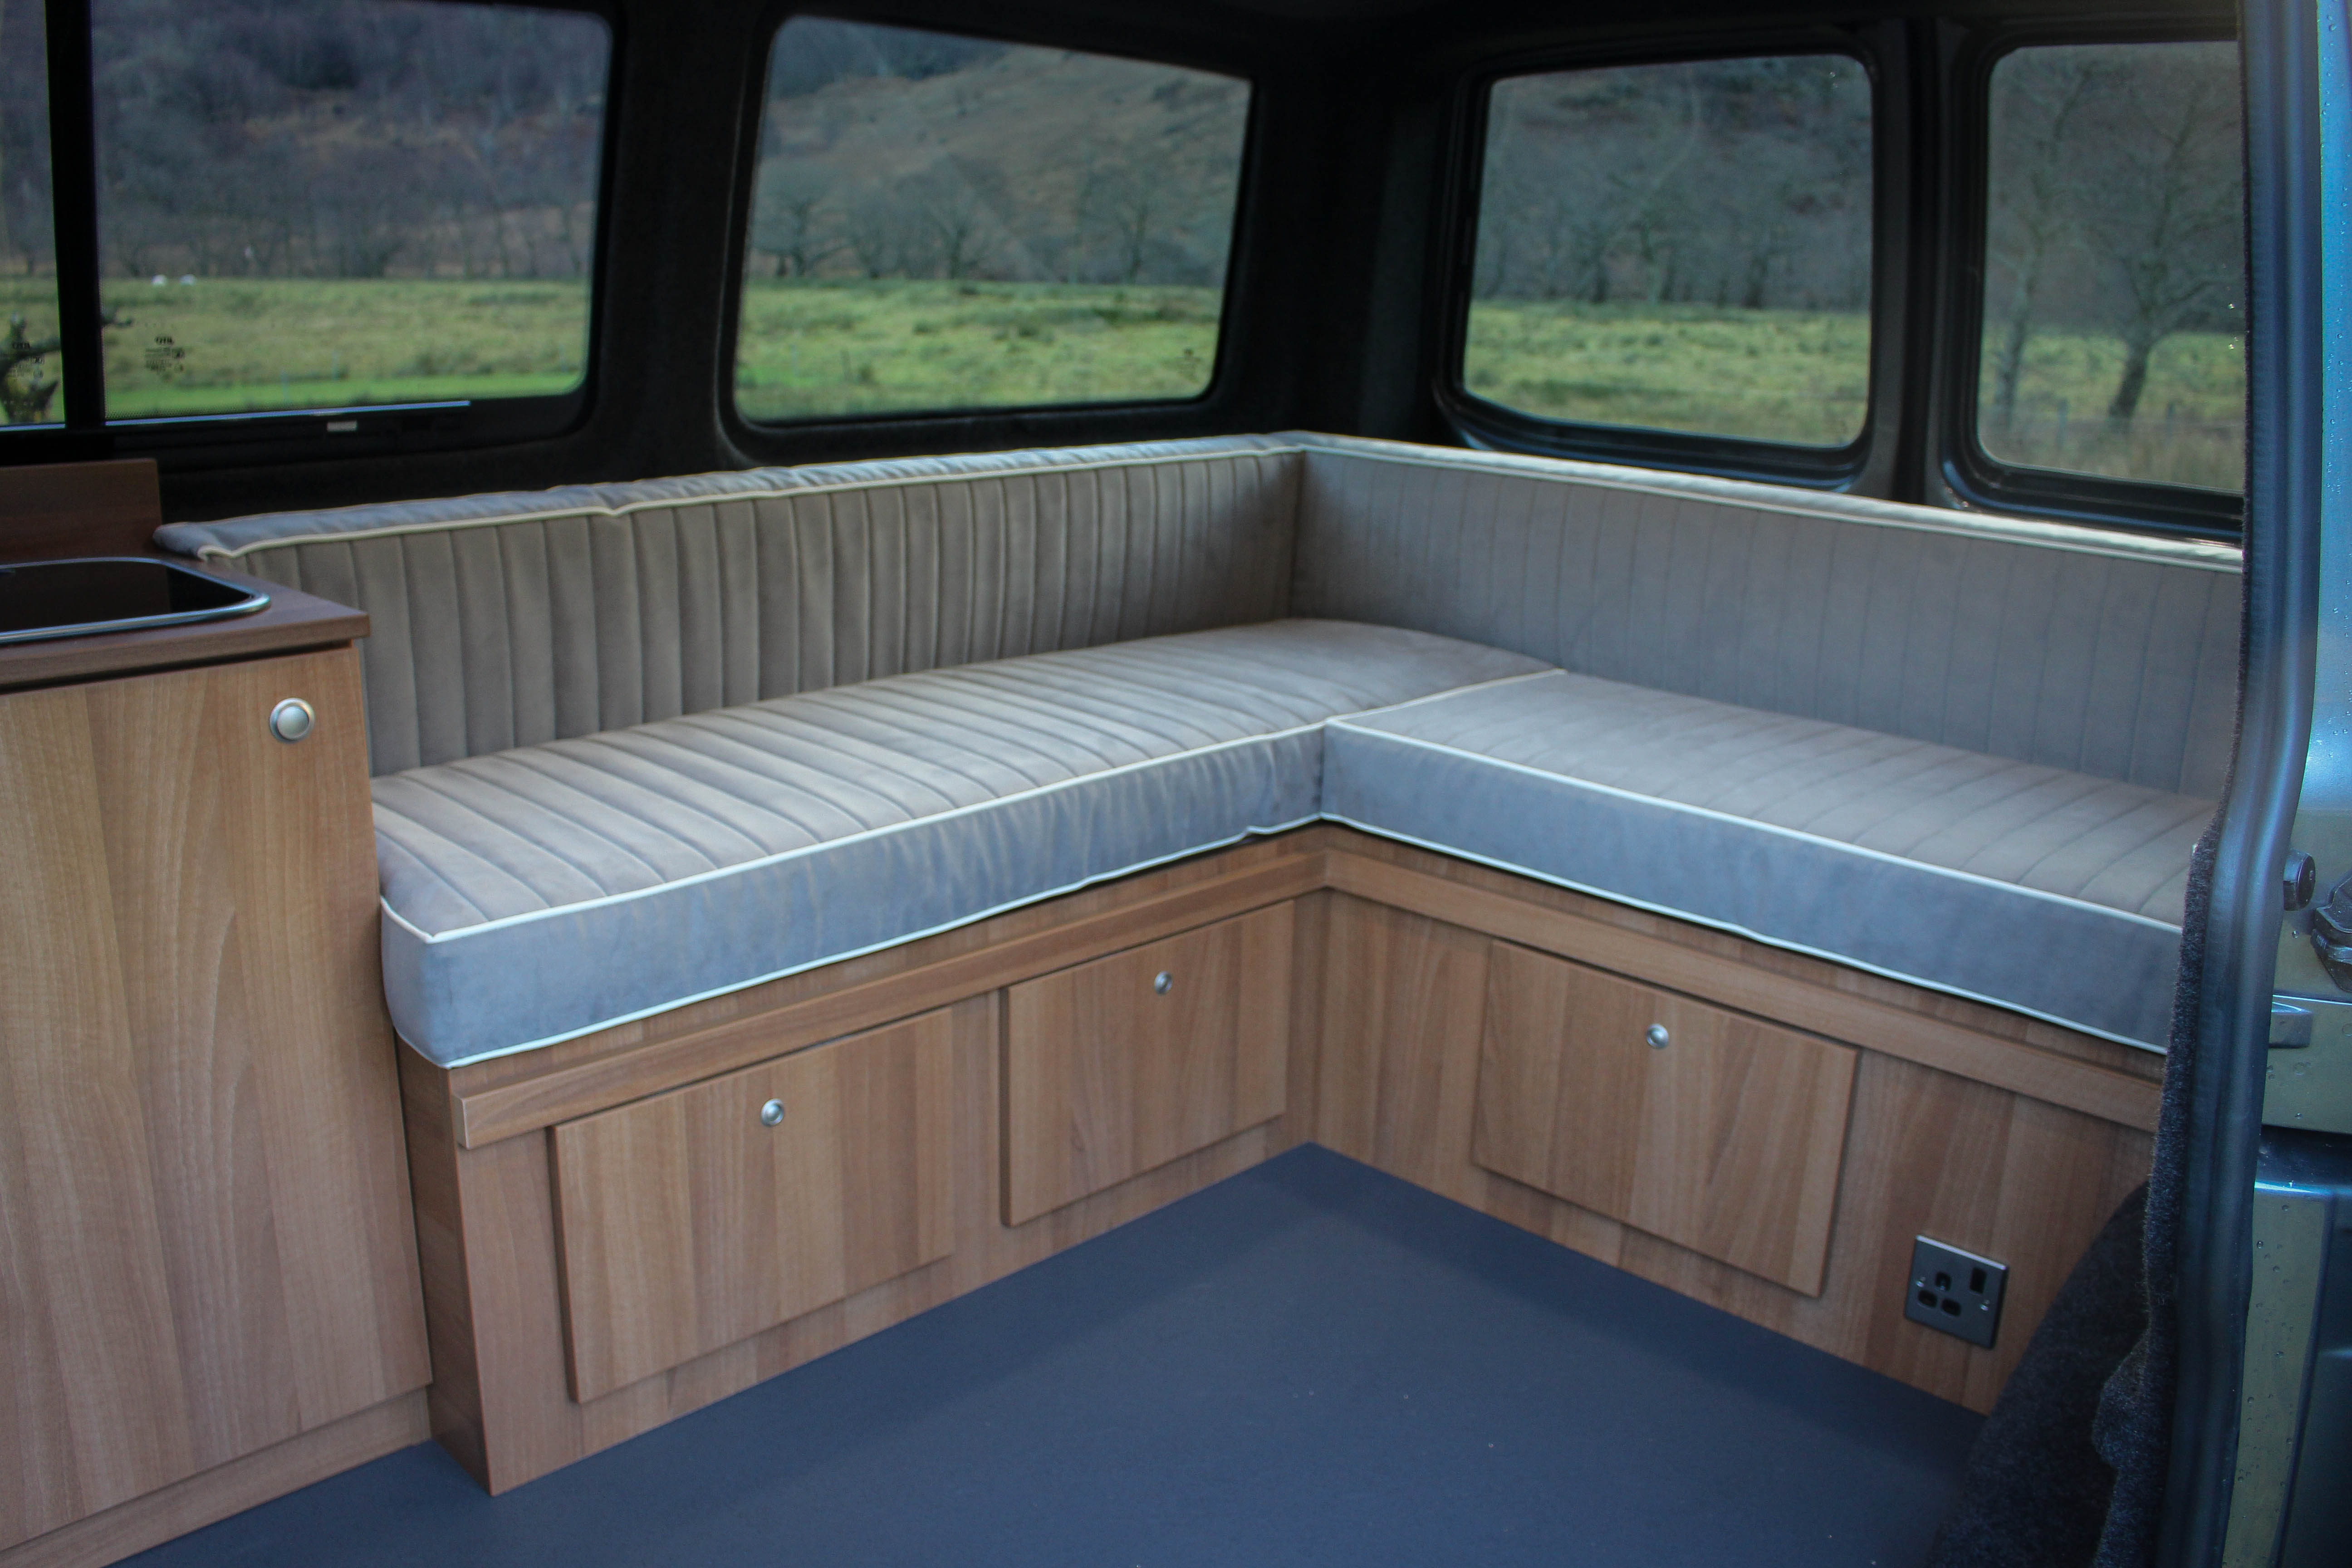 Camper Van Conversion Example Layouts Campervan Life